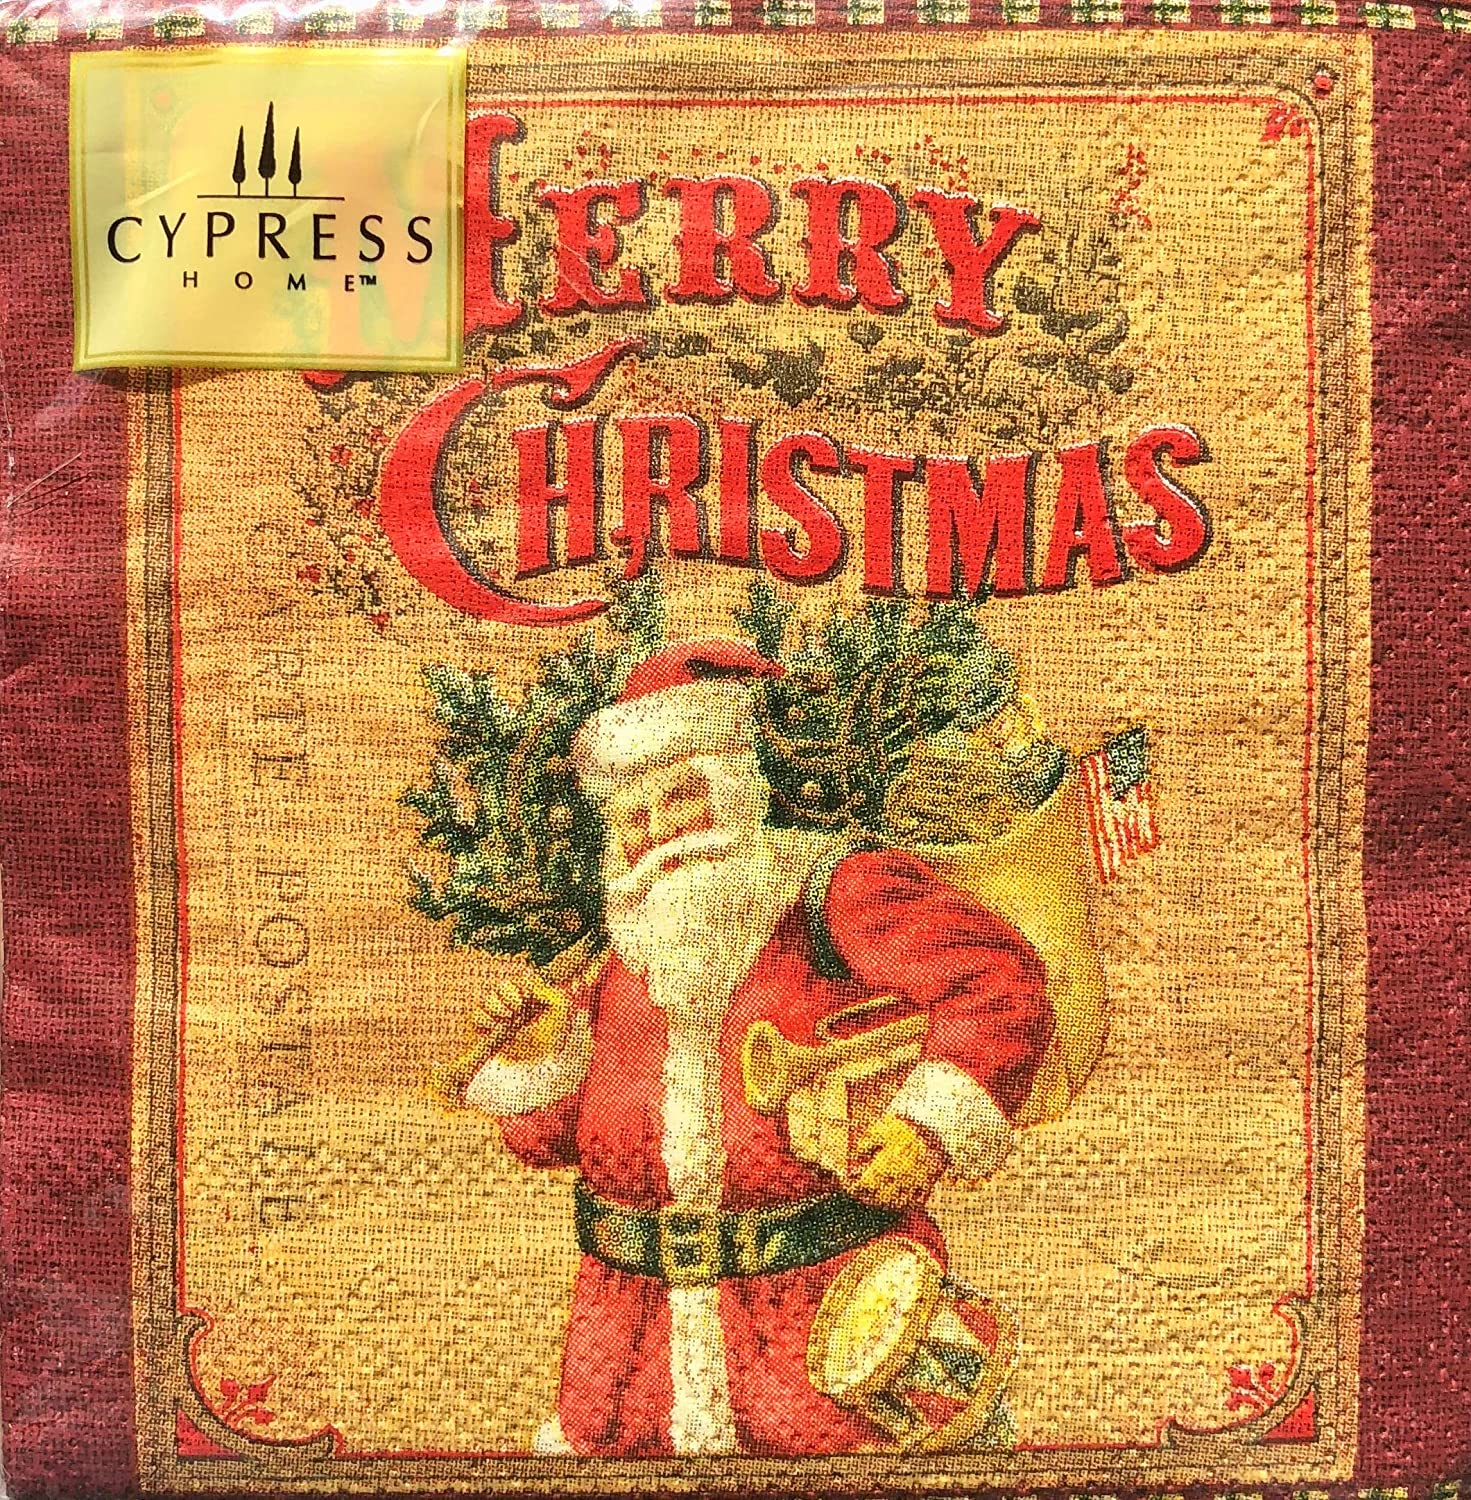 Cypress Home Nostalgic Merry Christmas Cocktail Beverage Paper Napkins, 40 ct